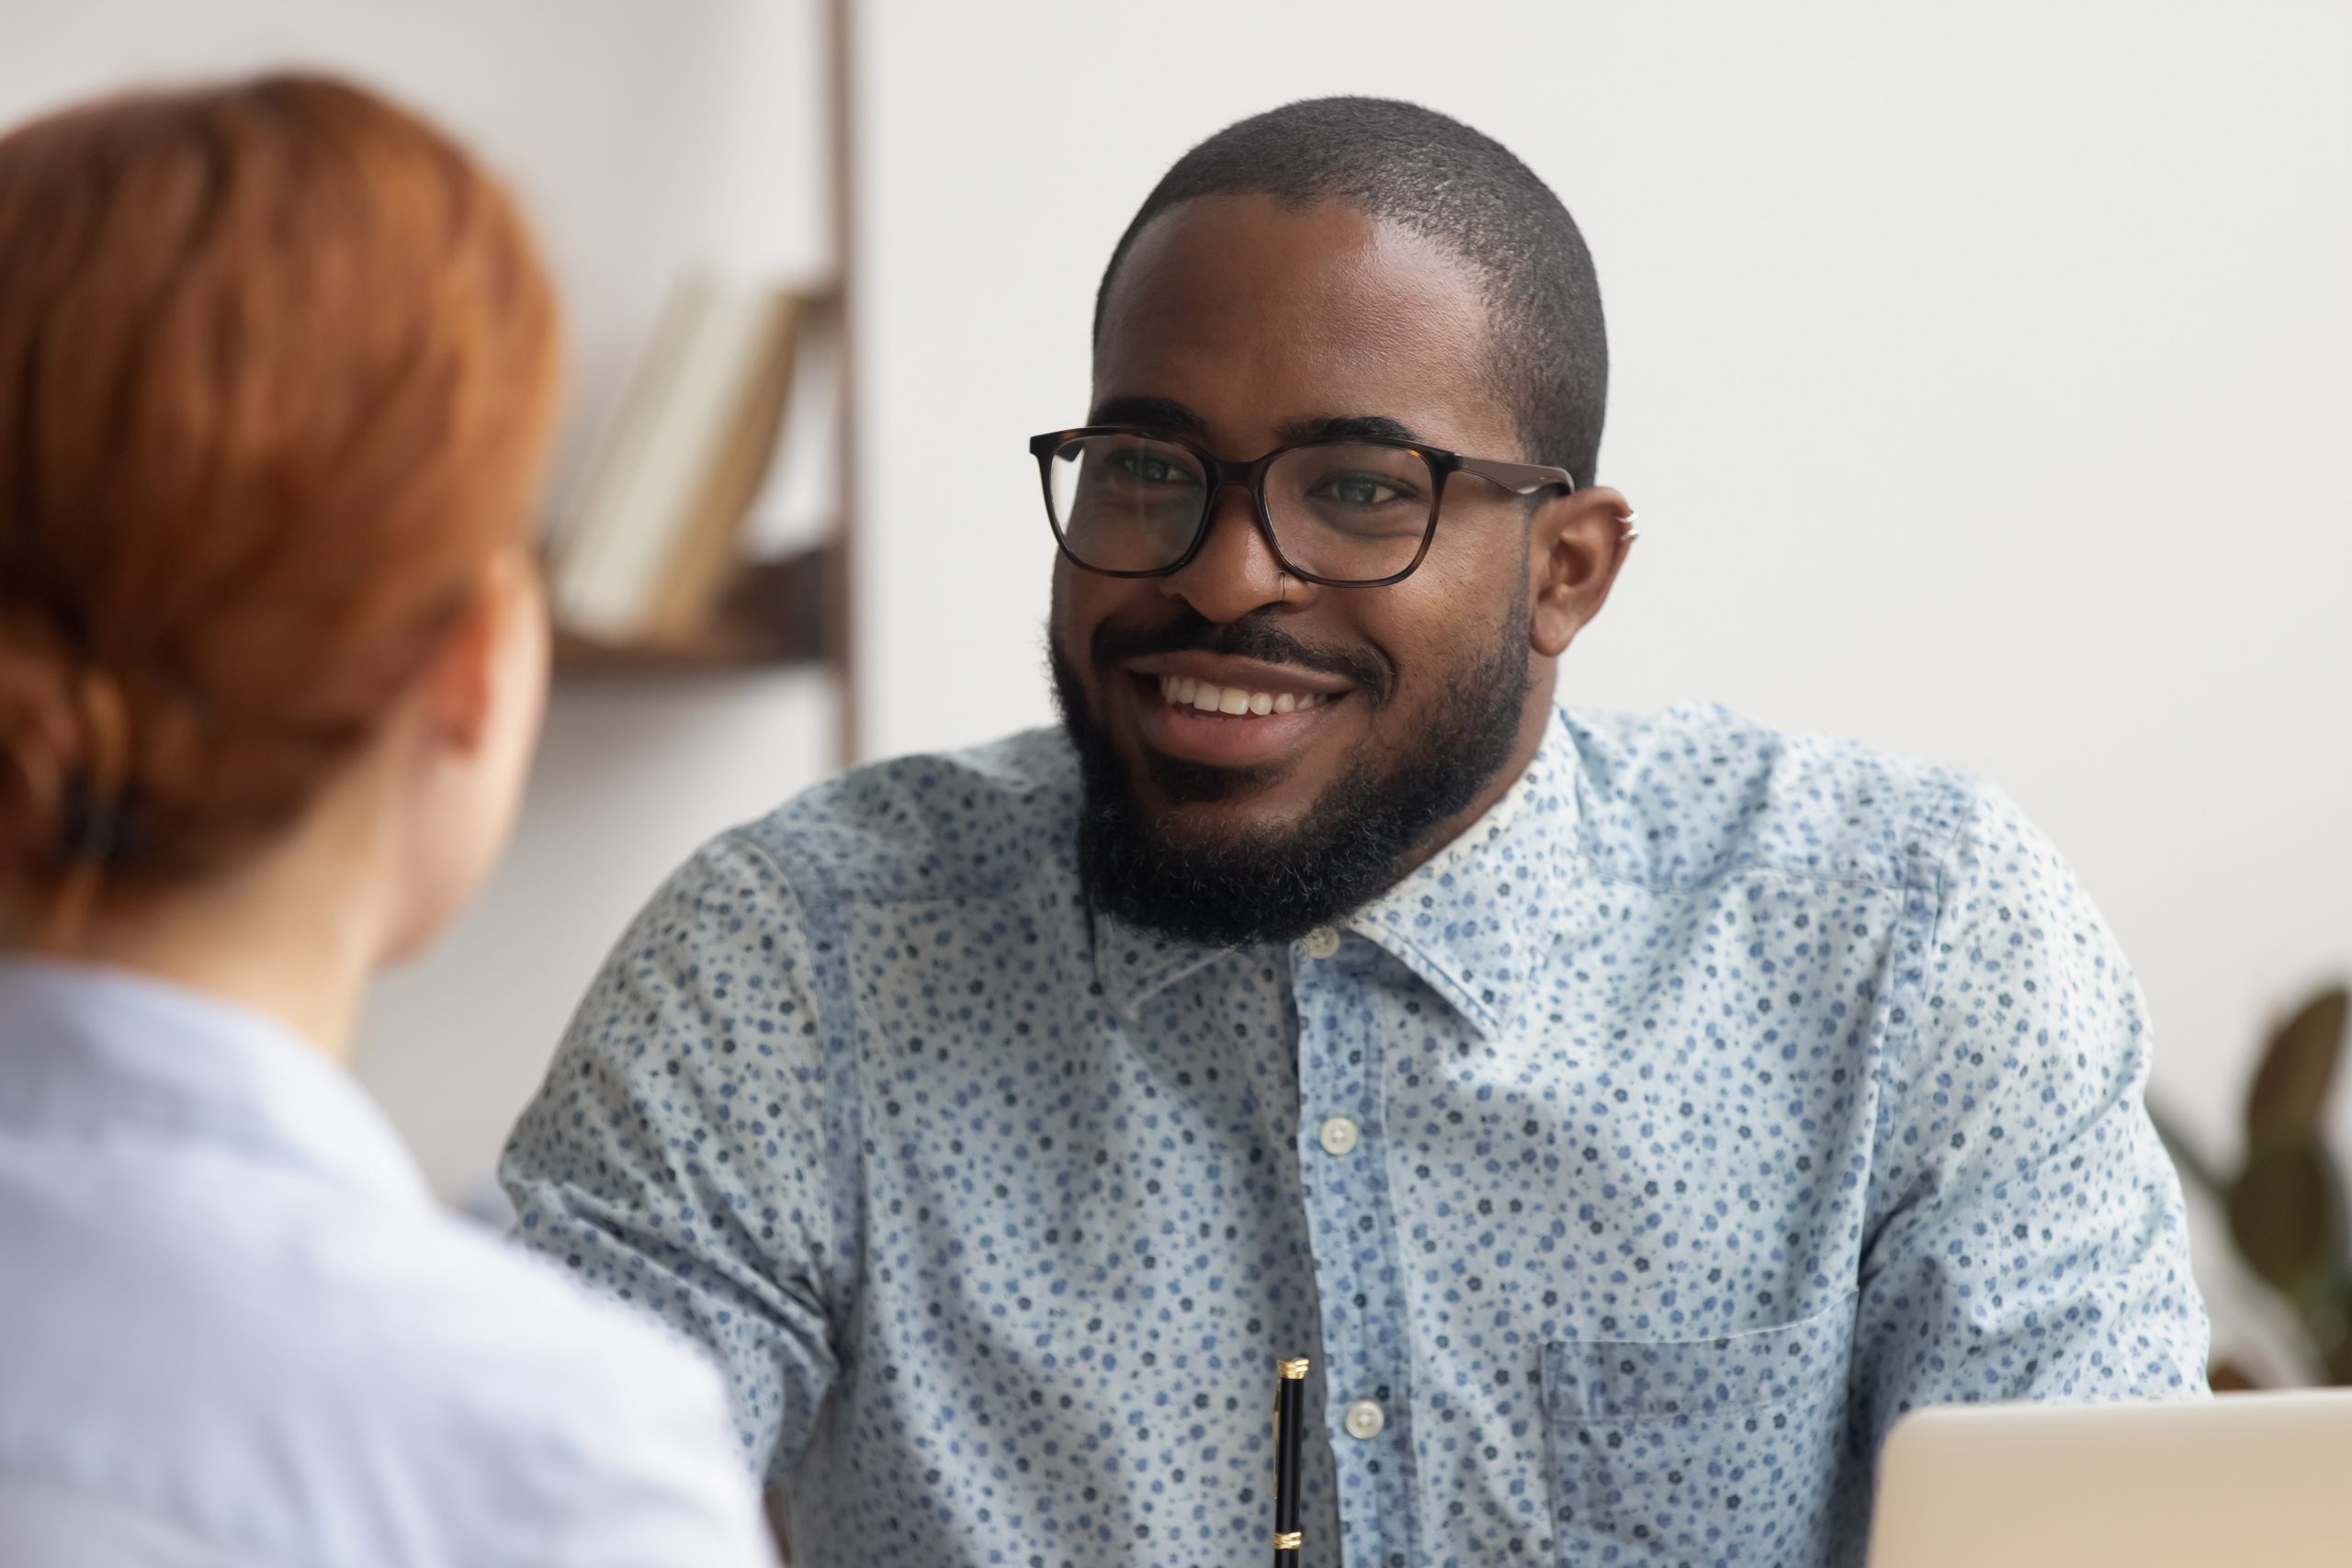 Caregivers in the Workplace: A Course for Employers